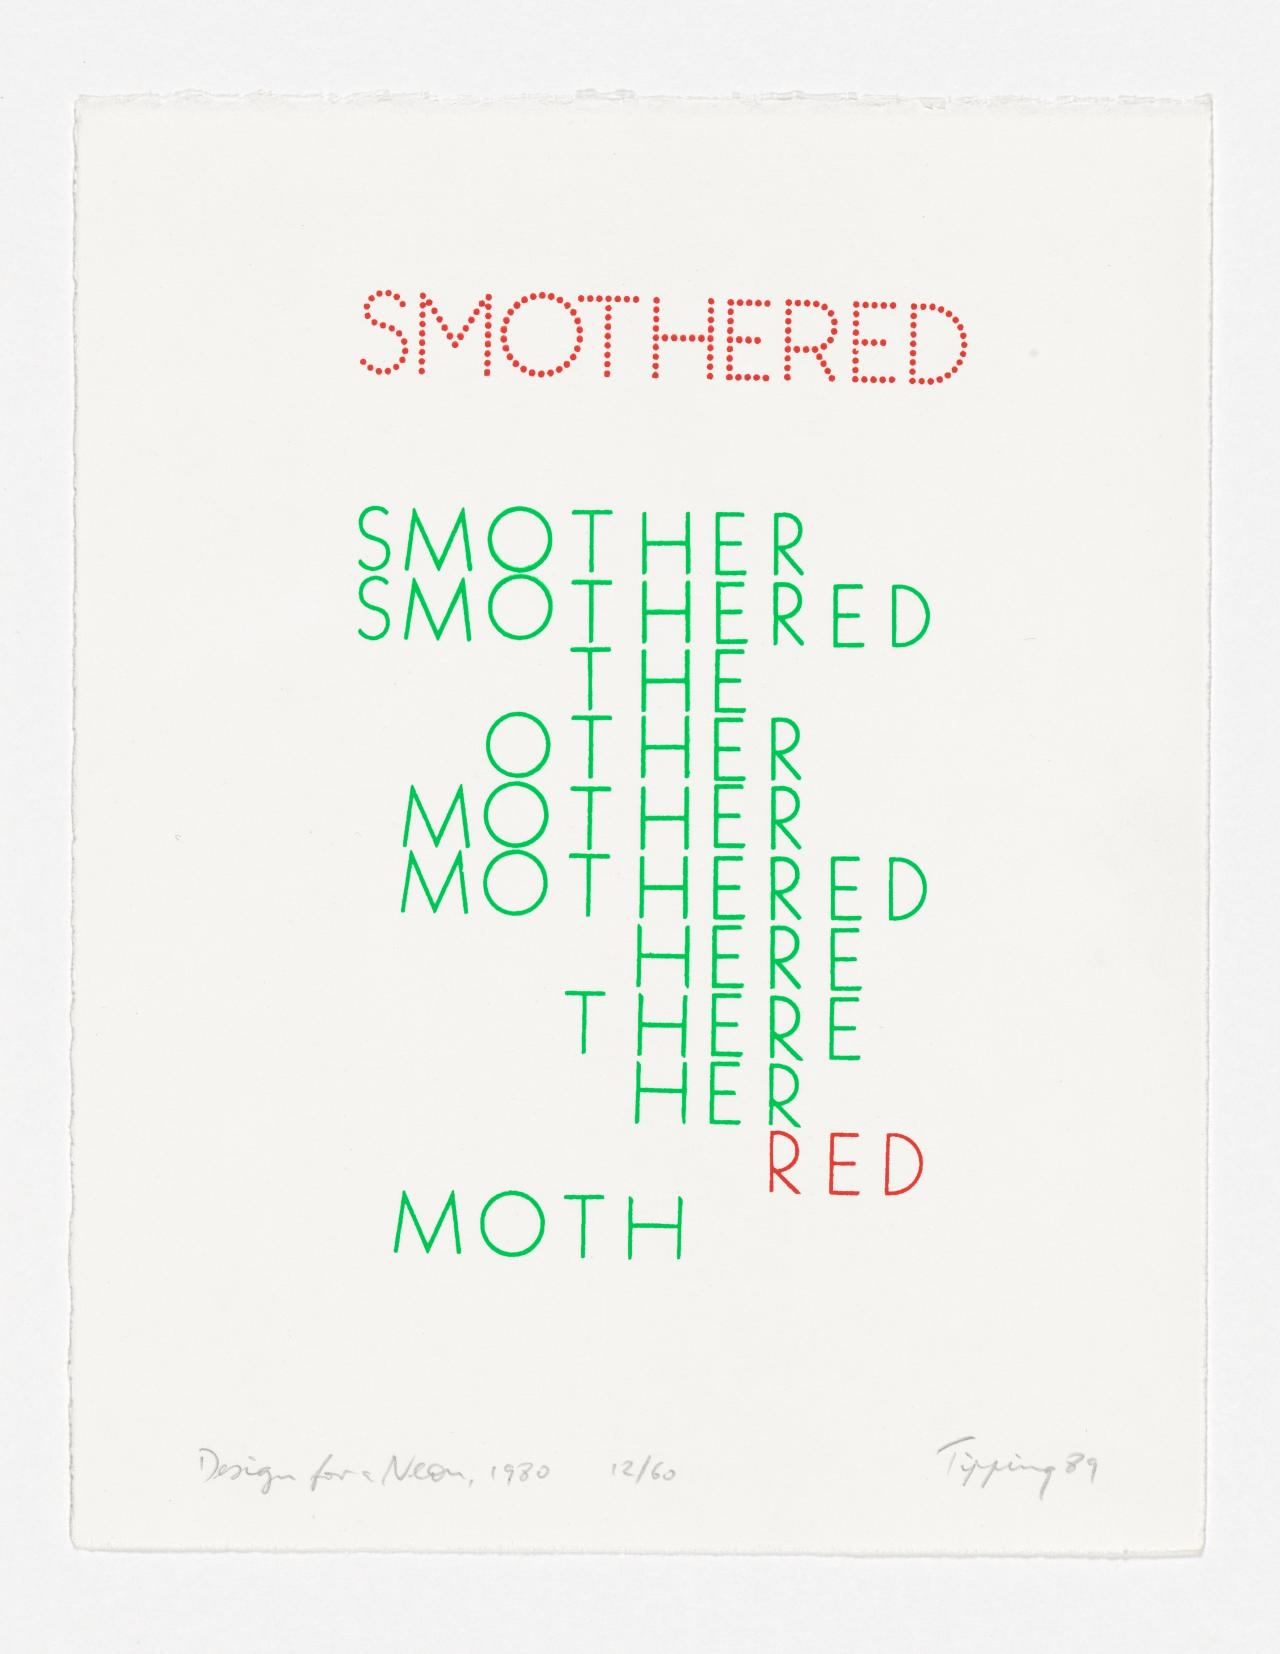 Smothered-design for a neon from